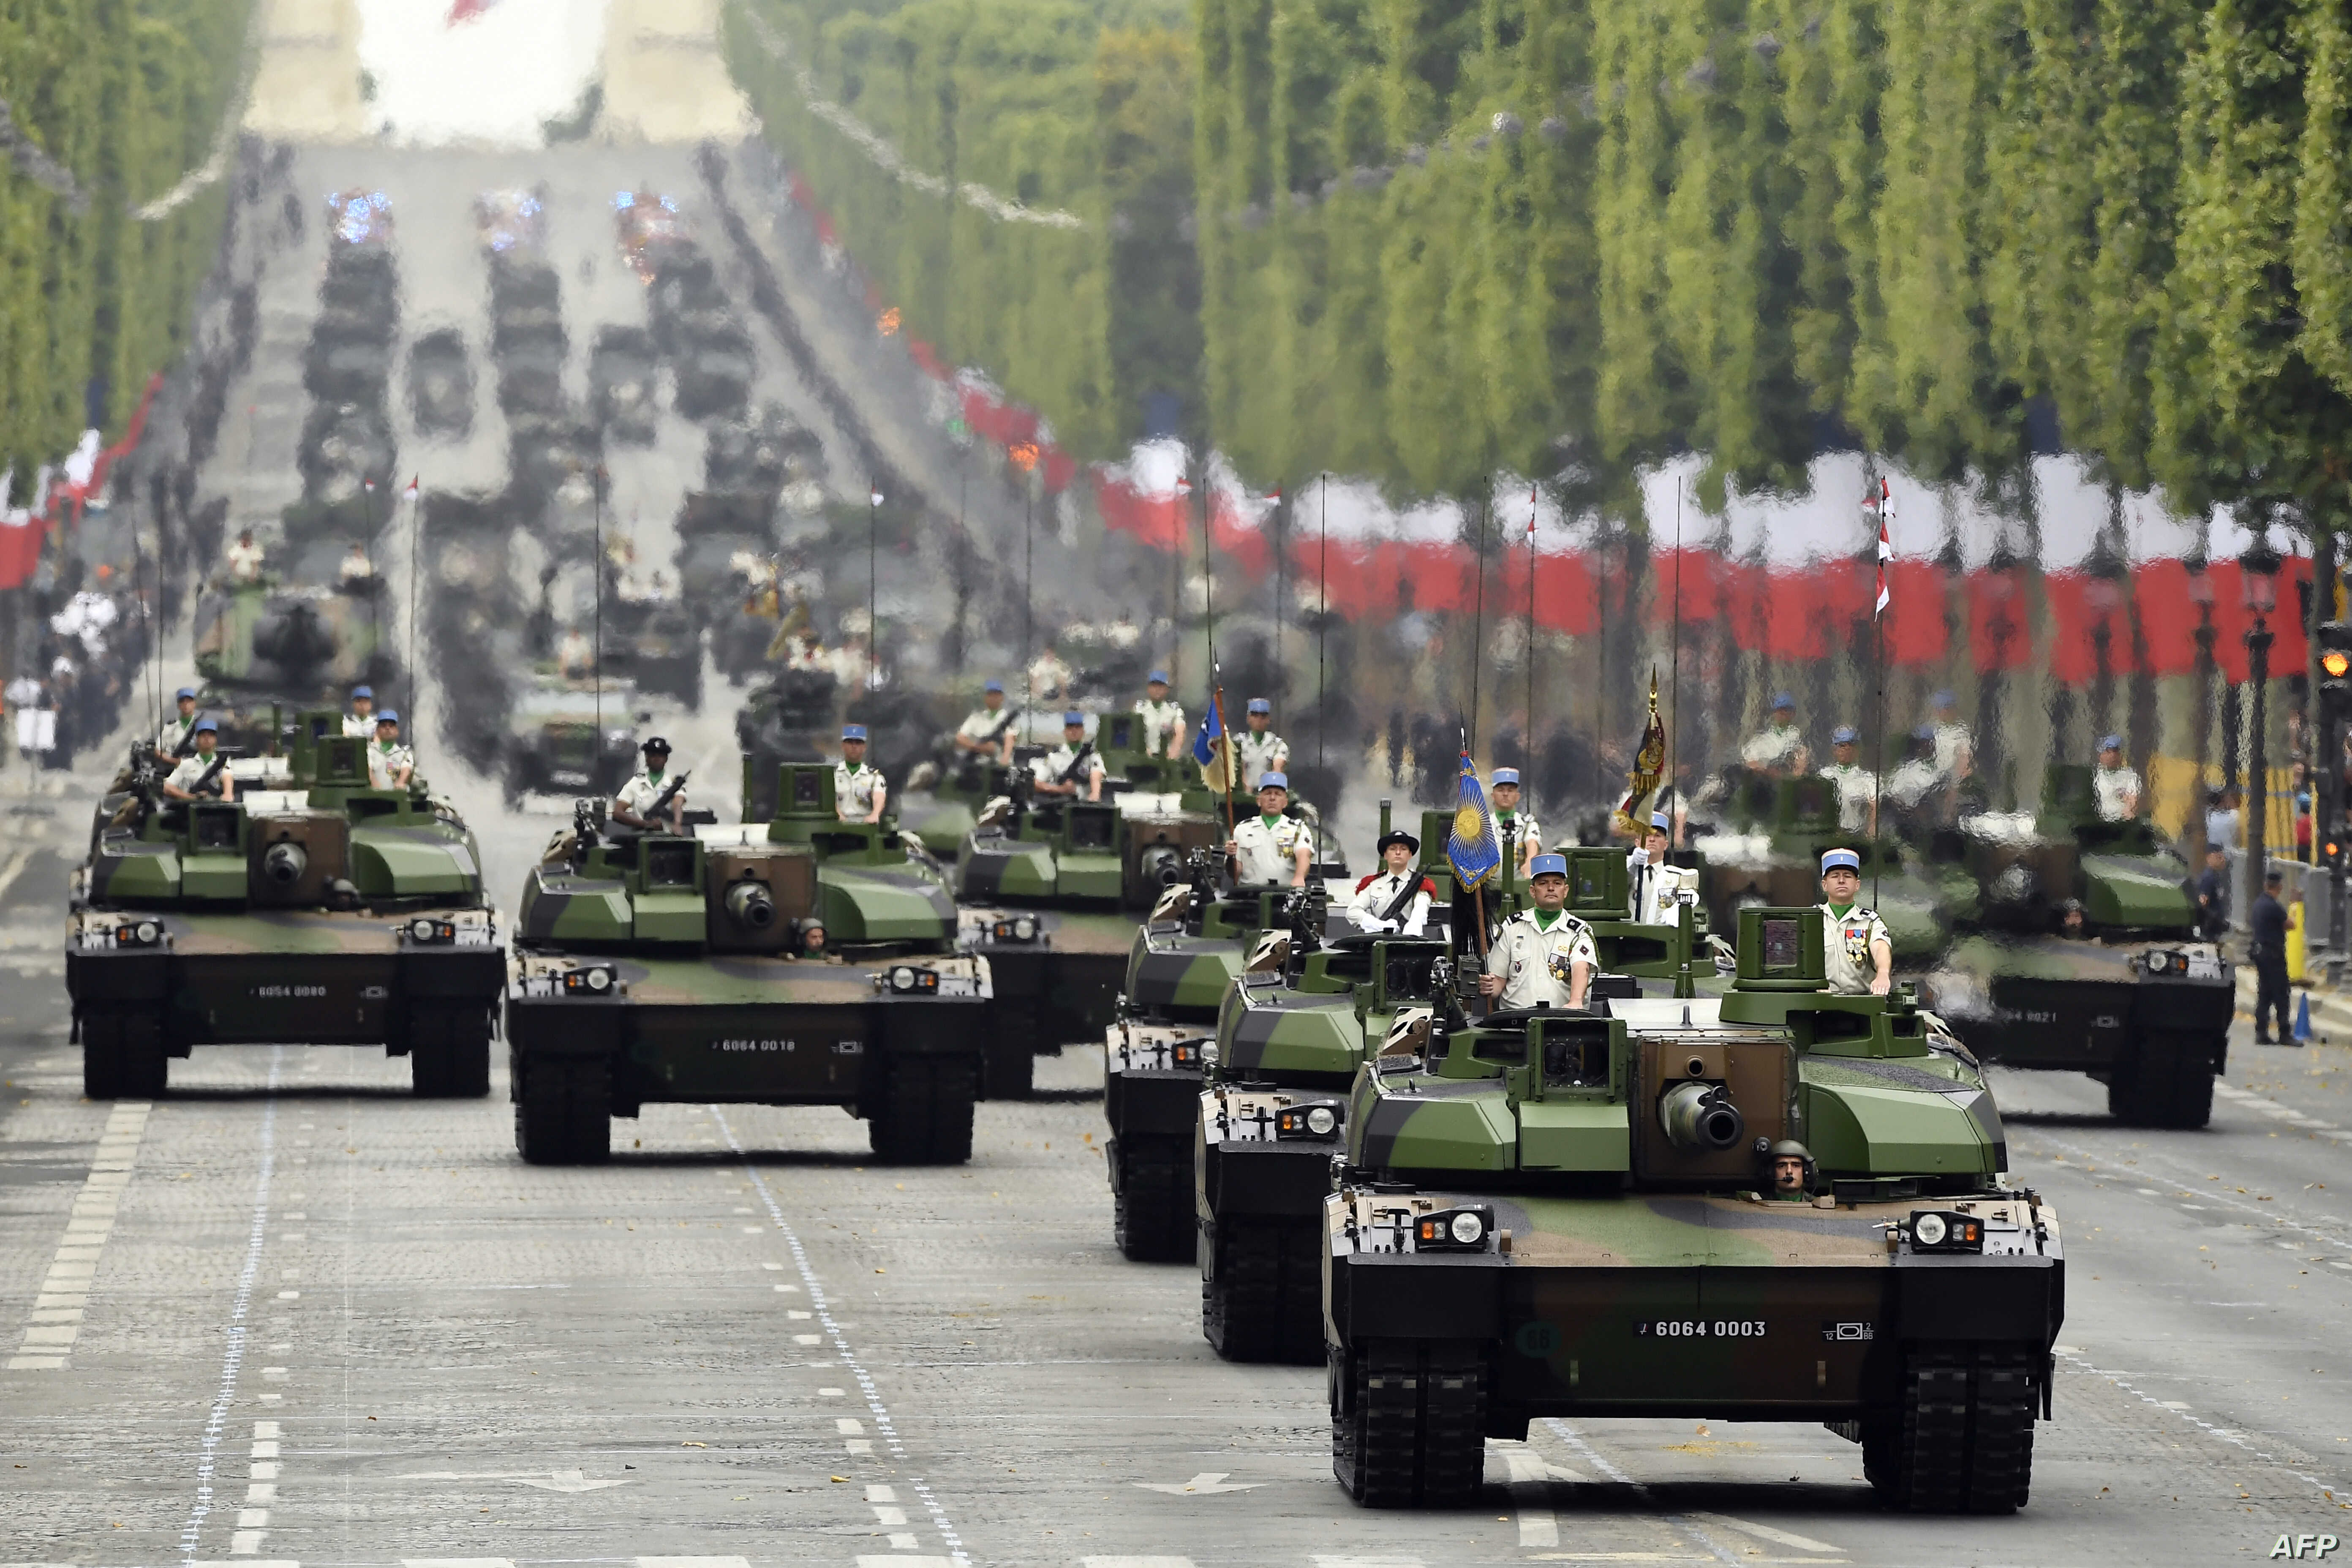 French soldiers parade in military vehicles during the Bastille Day military parade down the Champs-Elysees avenue in Paris, July 14, 2019.